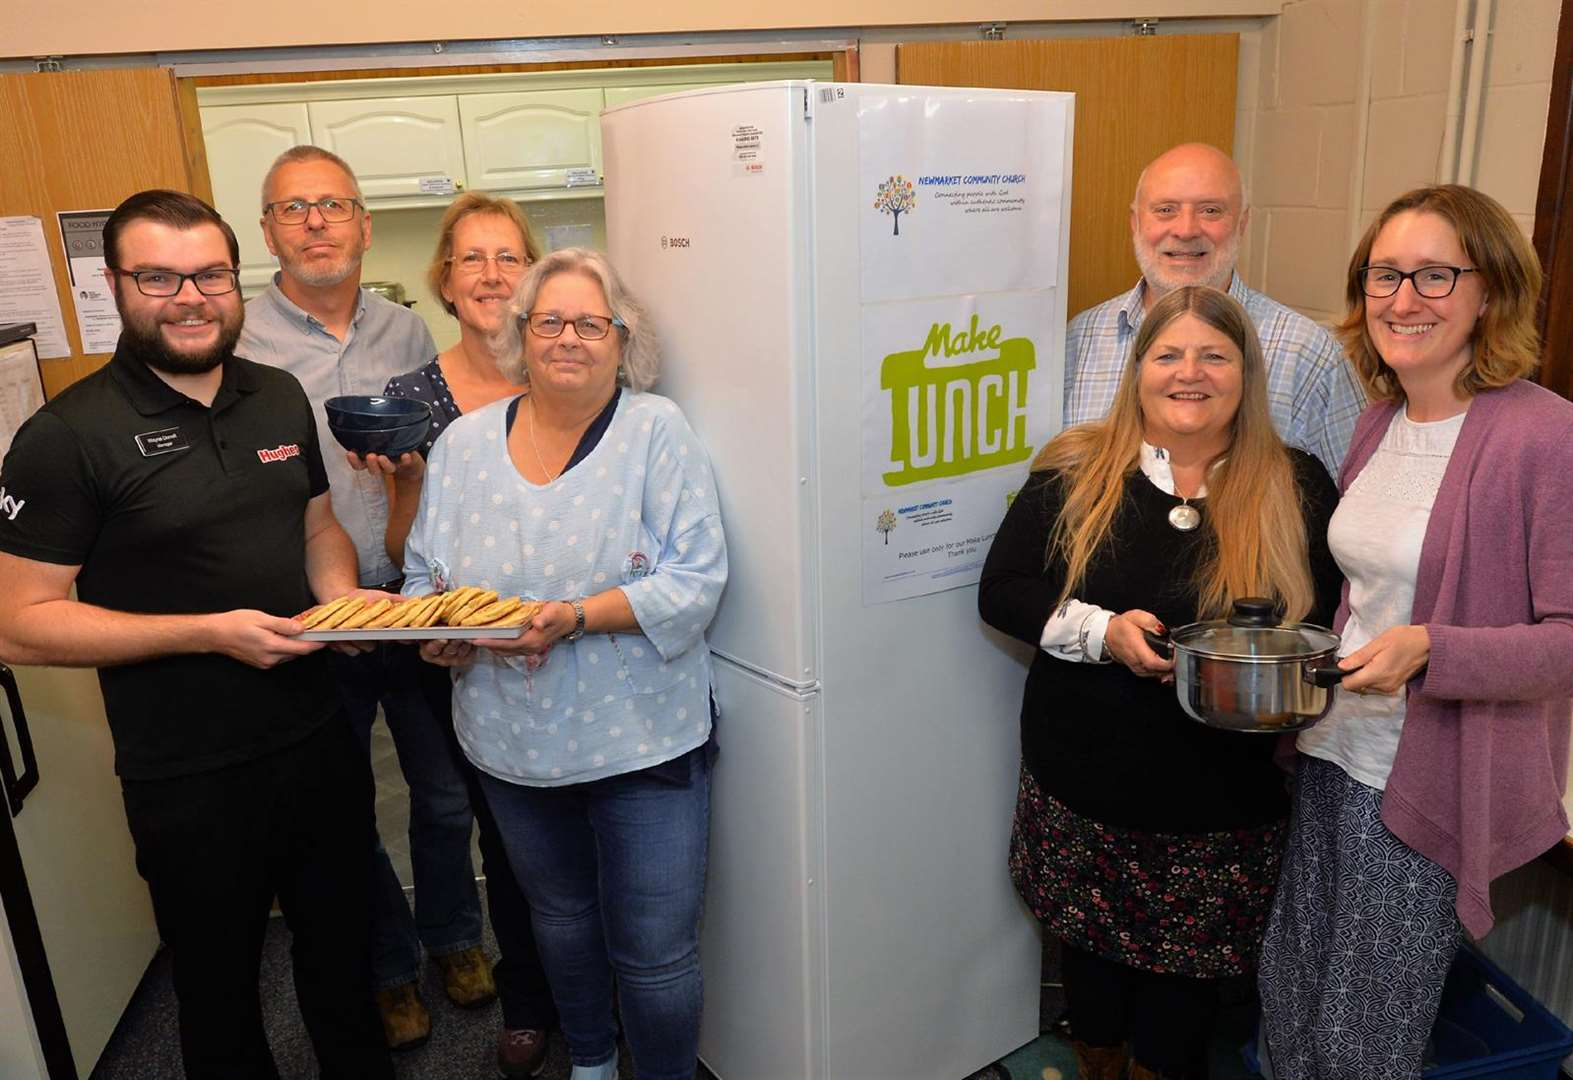 Volunteers set to Make Lunch in Newmarket as part of scheme to help struggling families